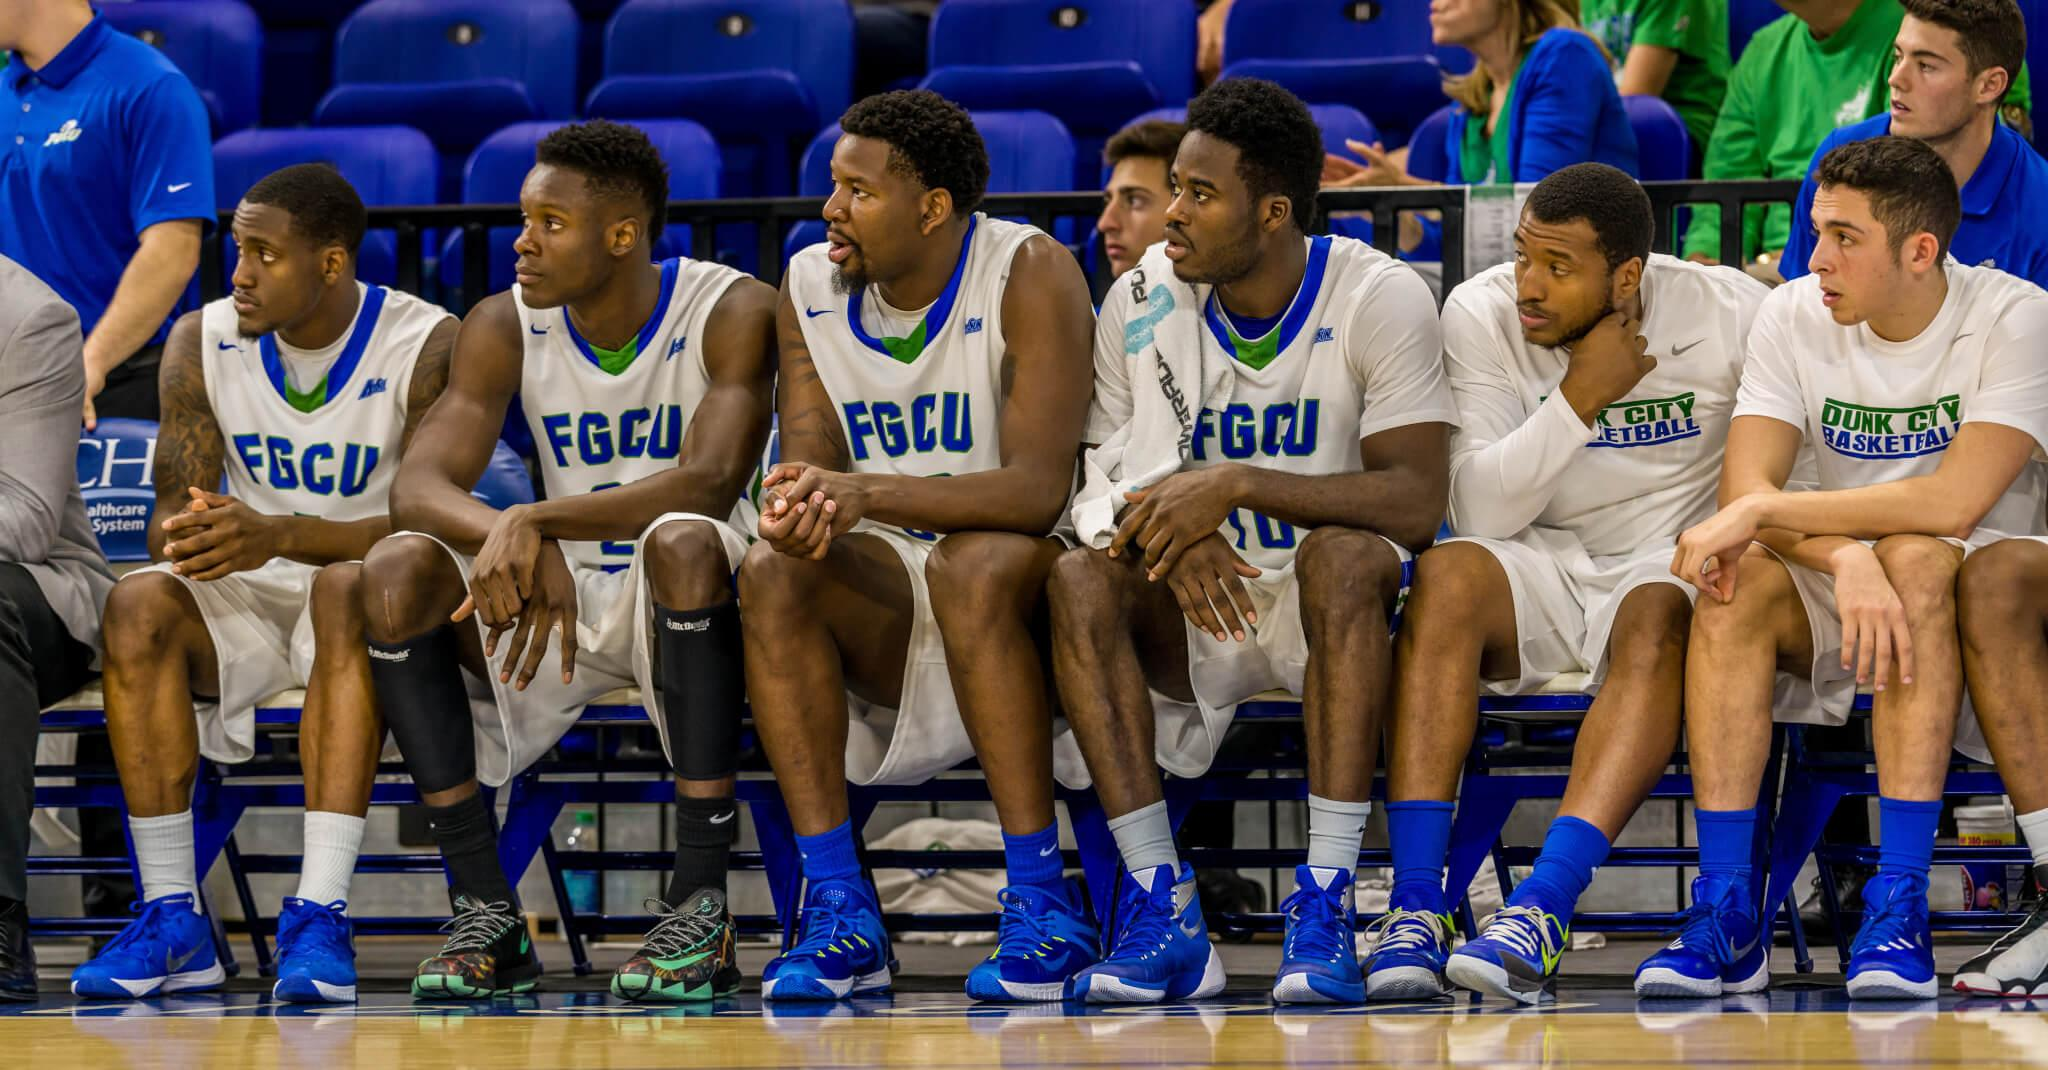 FGCU men's basketball to face UF to  kick off 2016 season